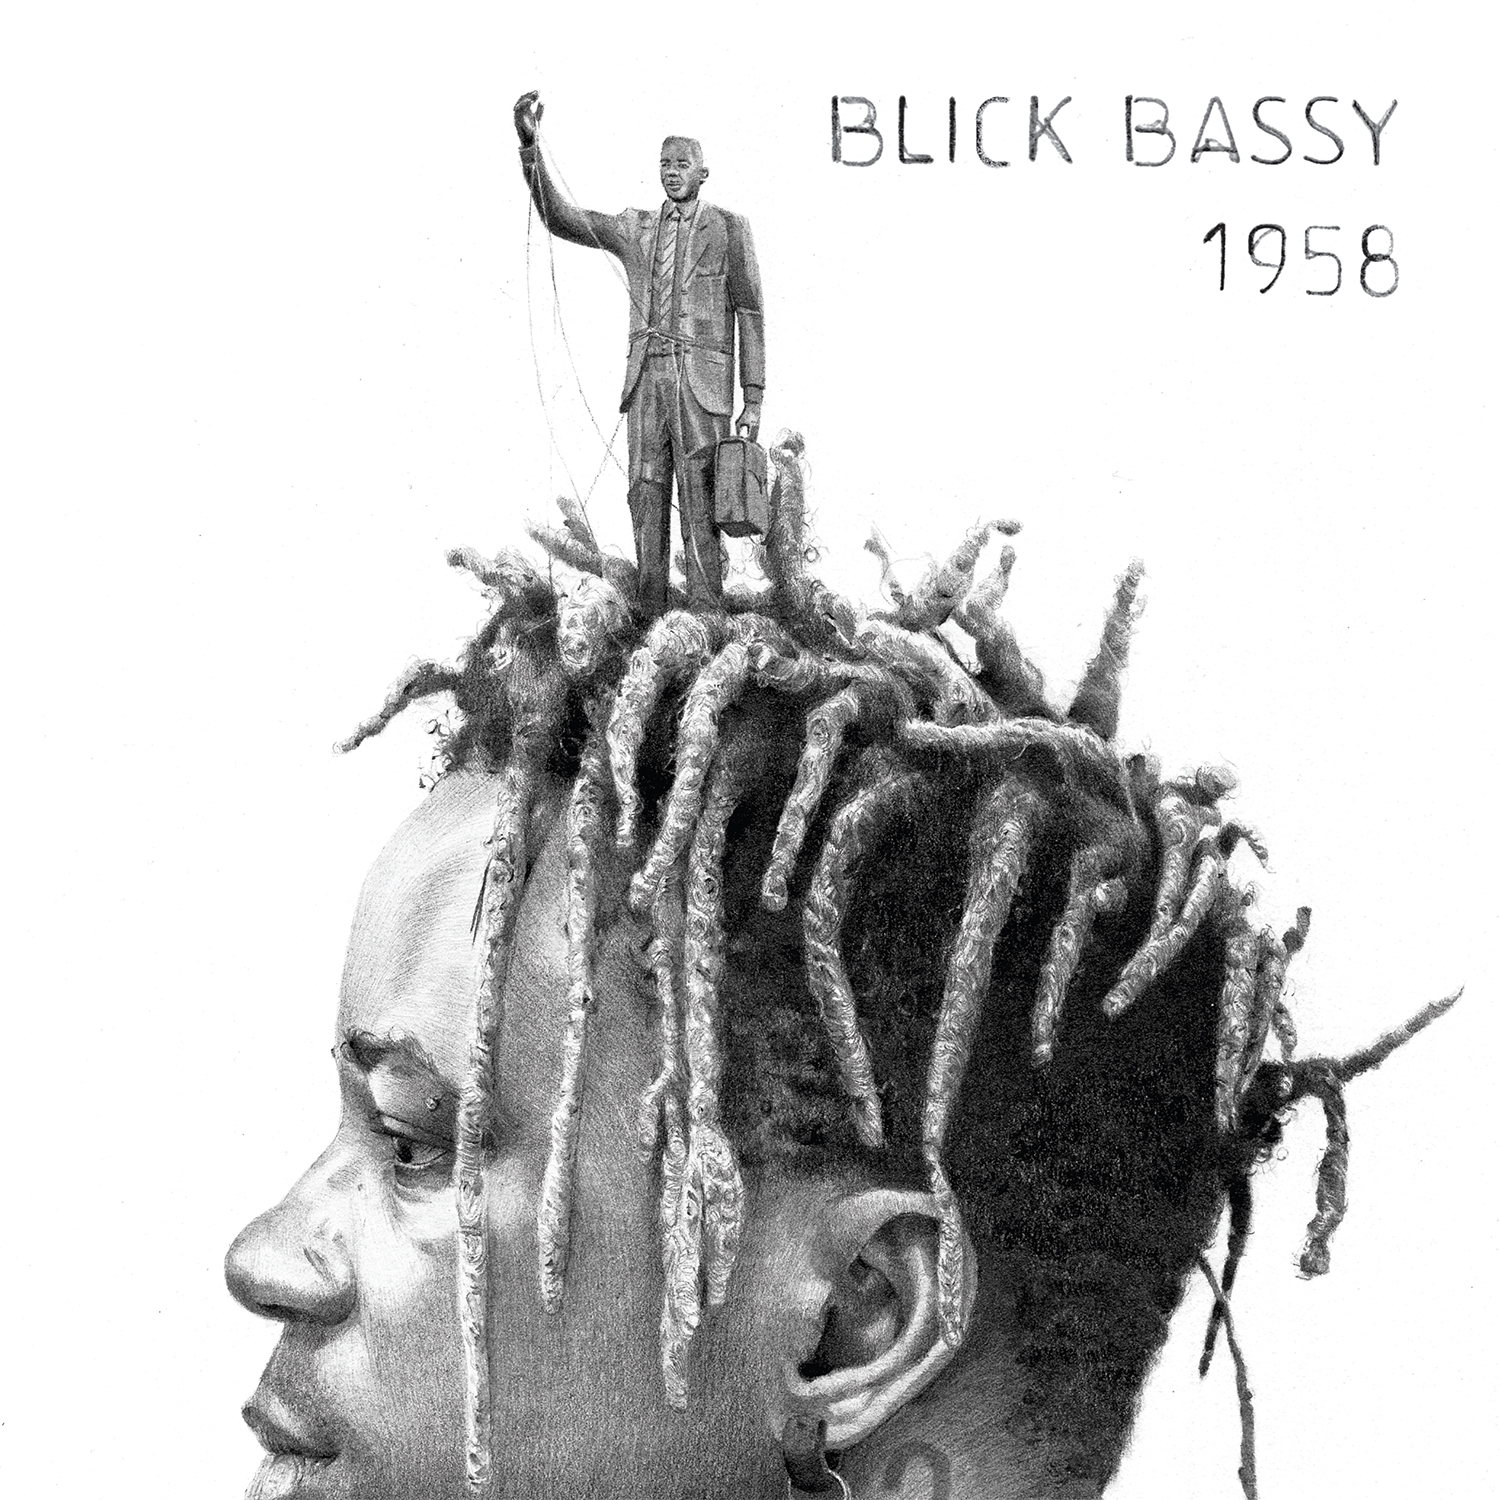 Cover art from Blick Bassy's album 1958 - the artist's face in profile